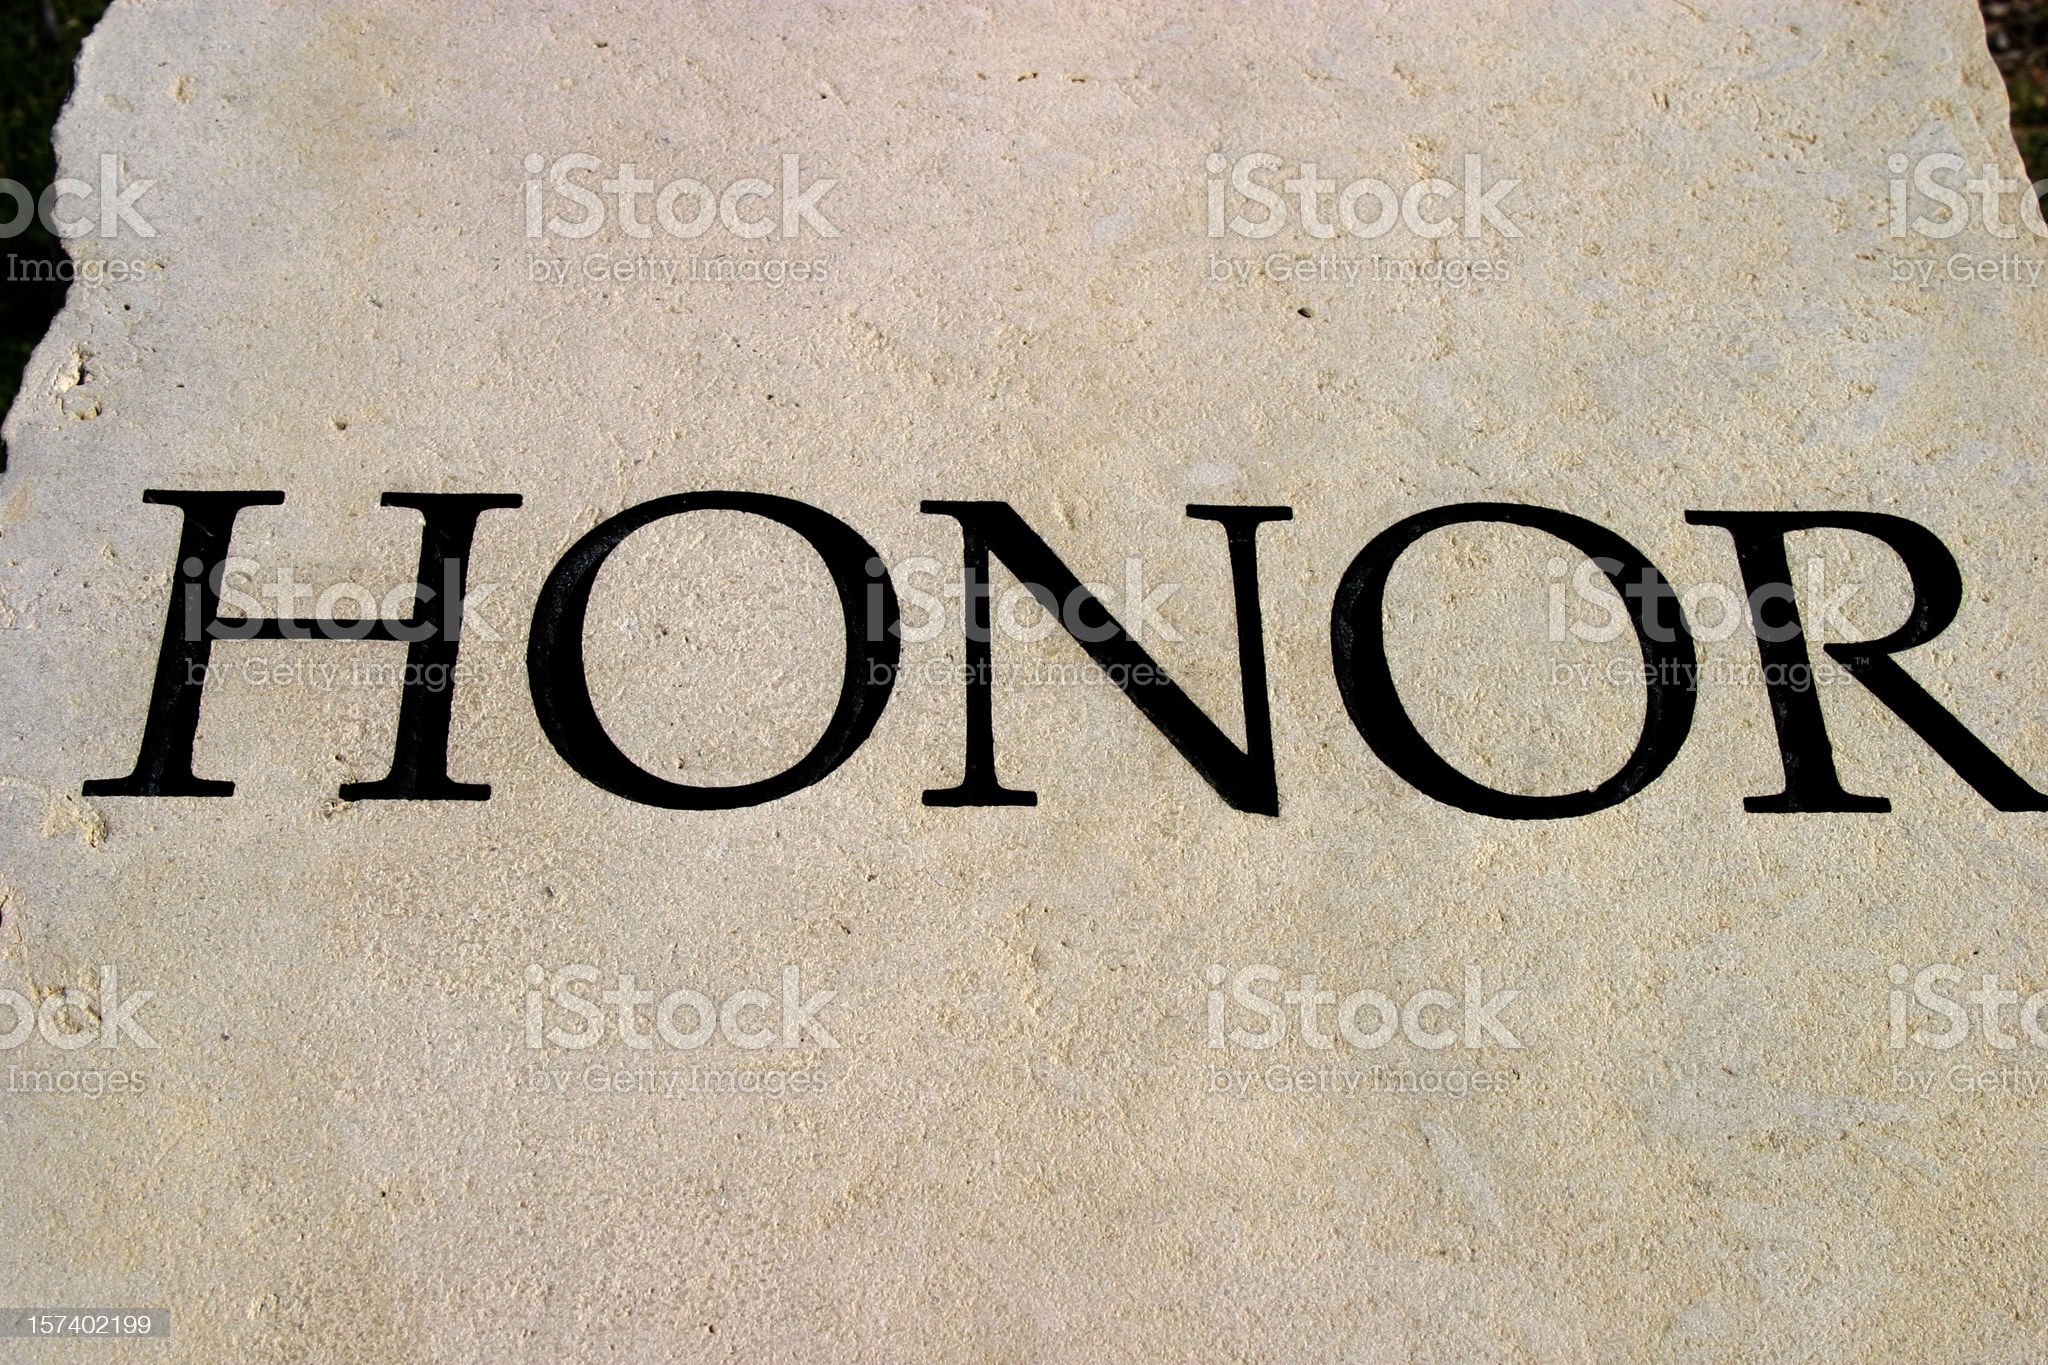 Character traits series - Honor royalty-free stock photo